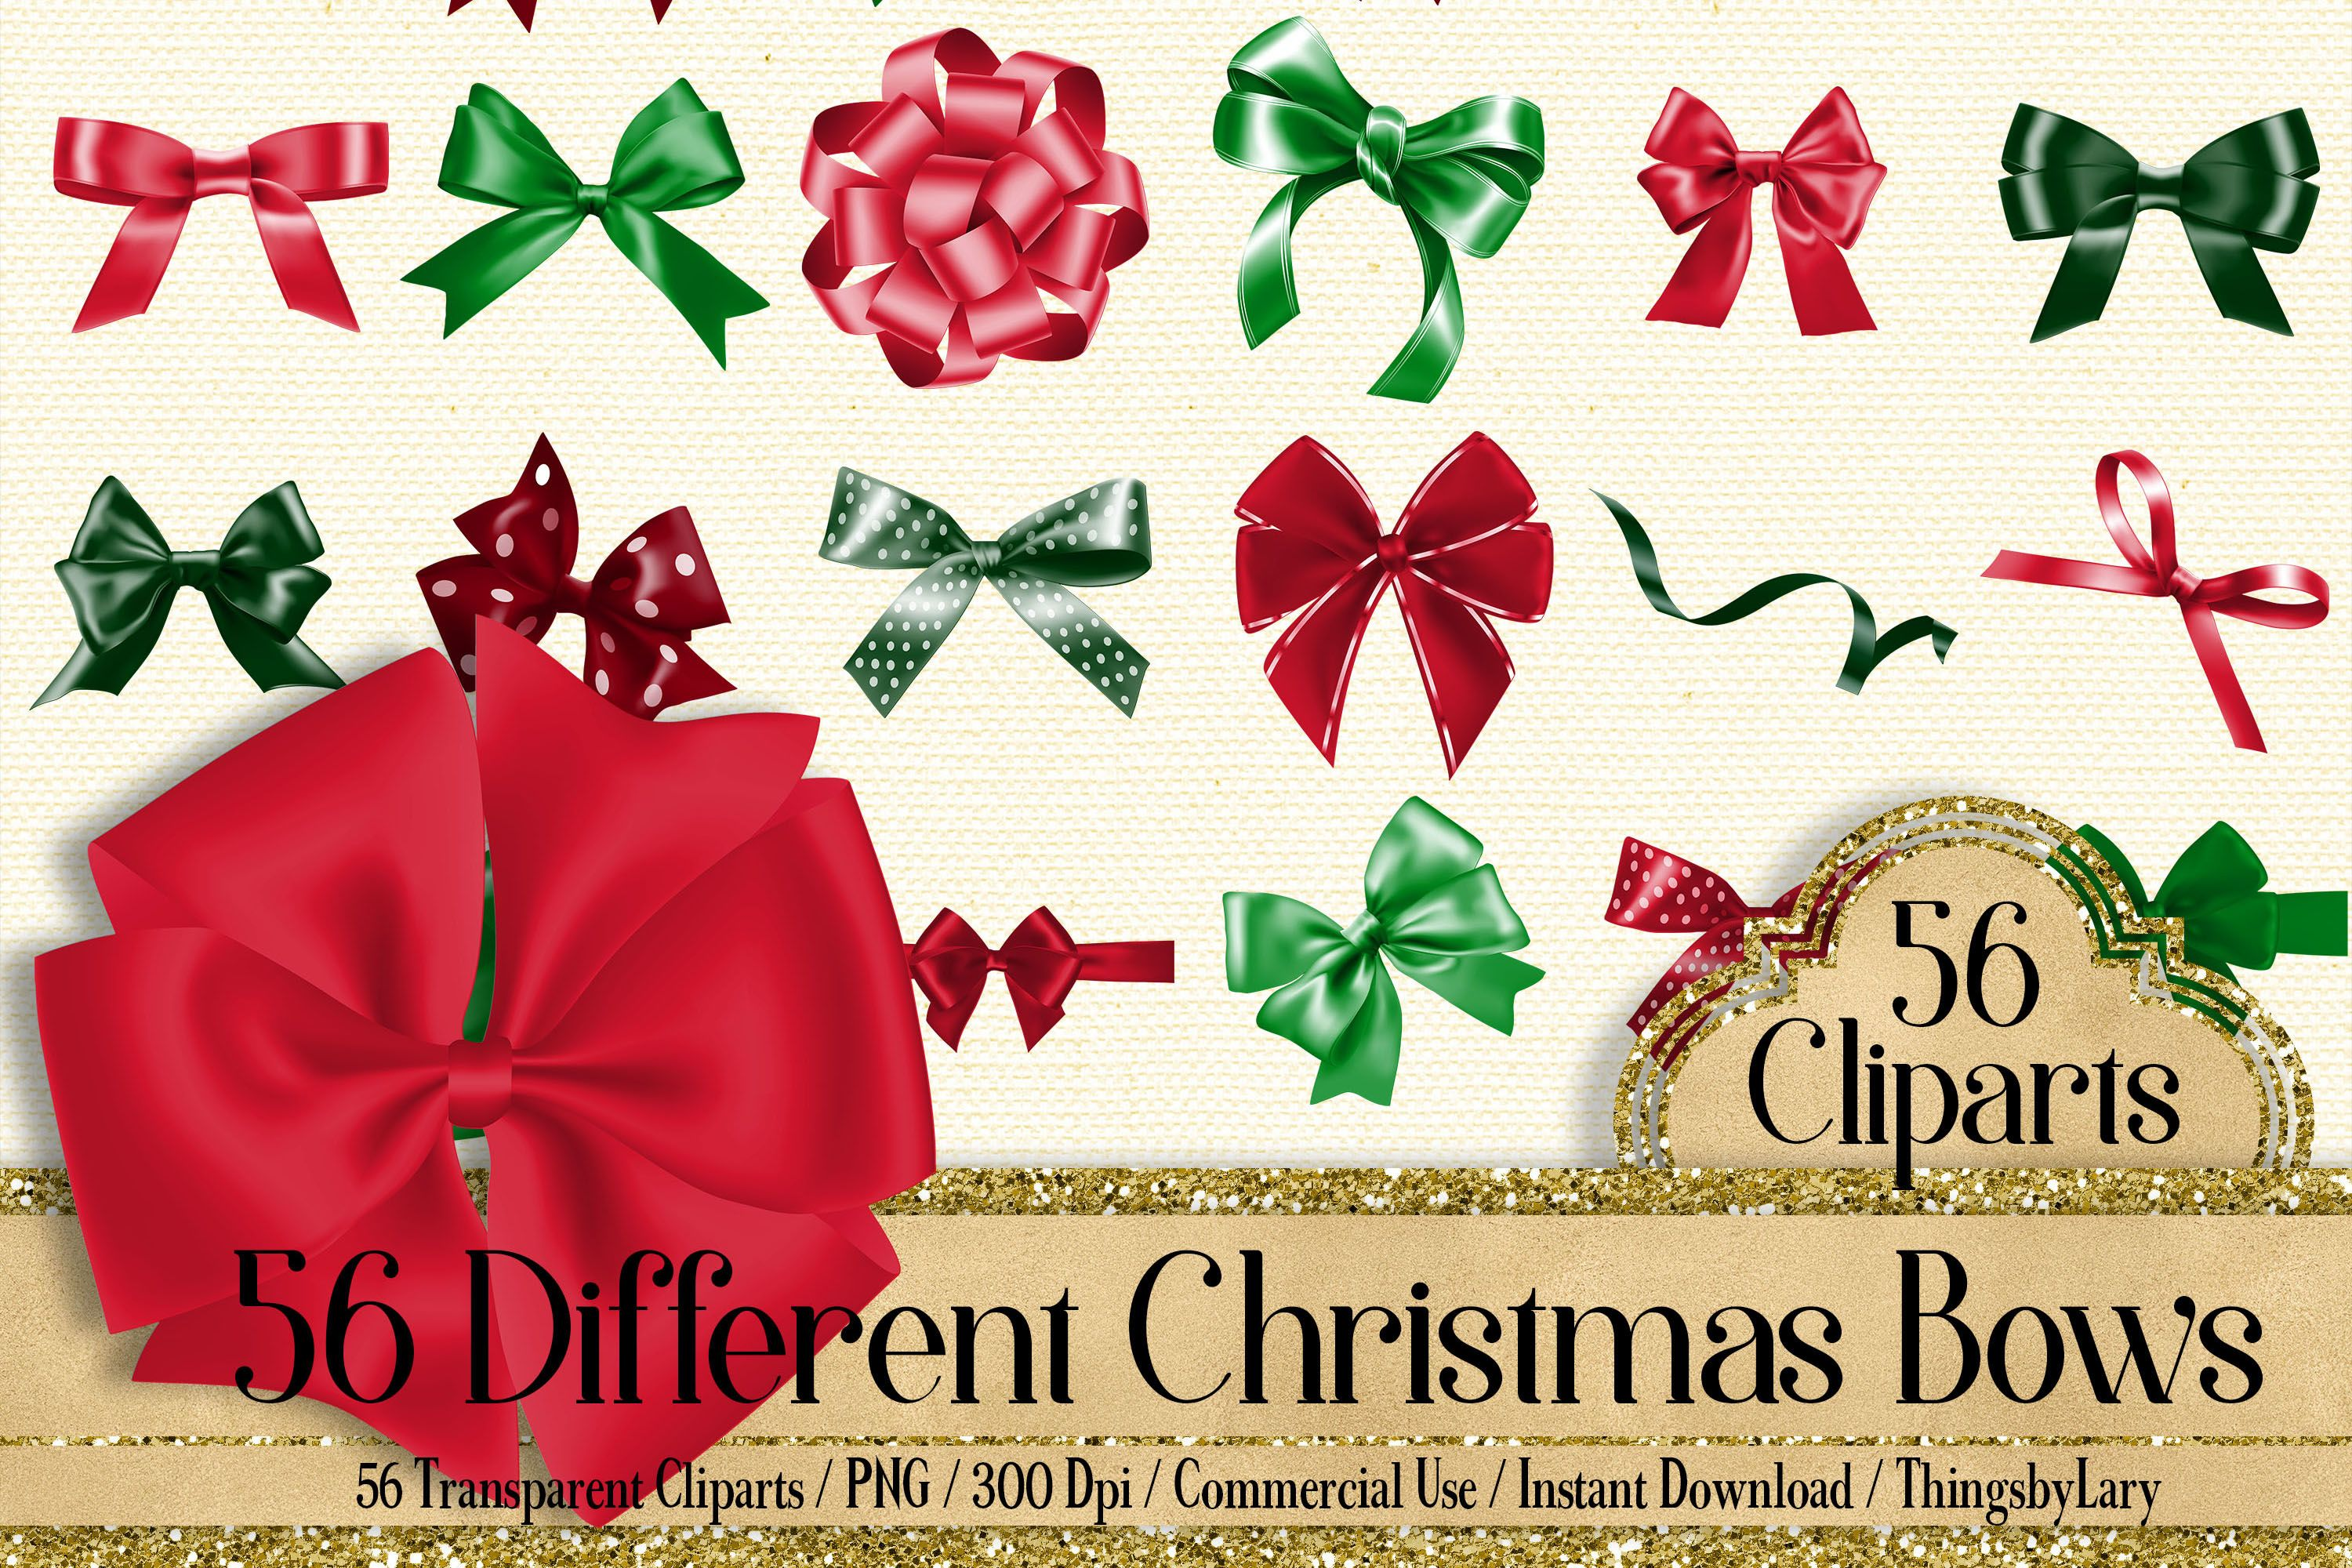 56 Christmas Bows and Ribbons Clip Arts PNG Transparent.